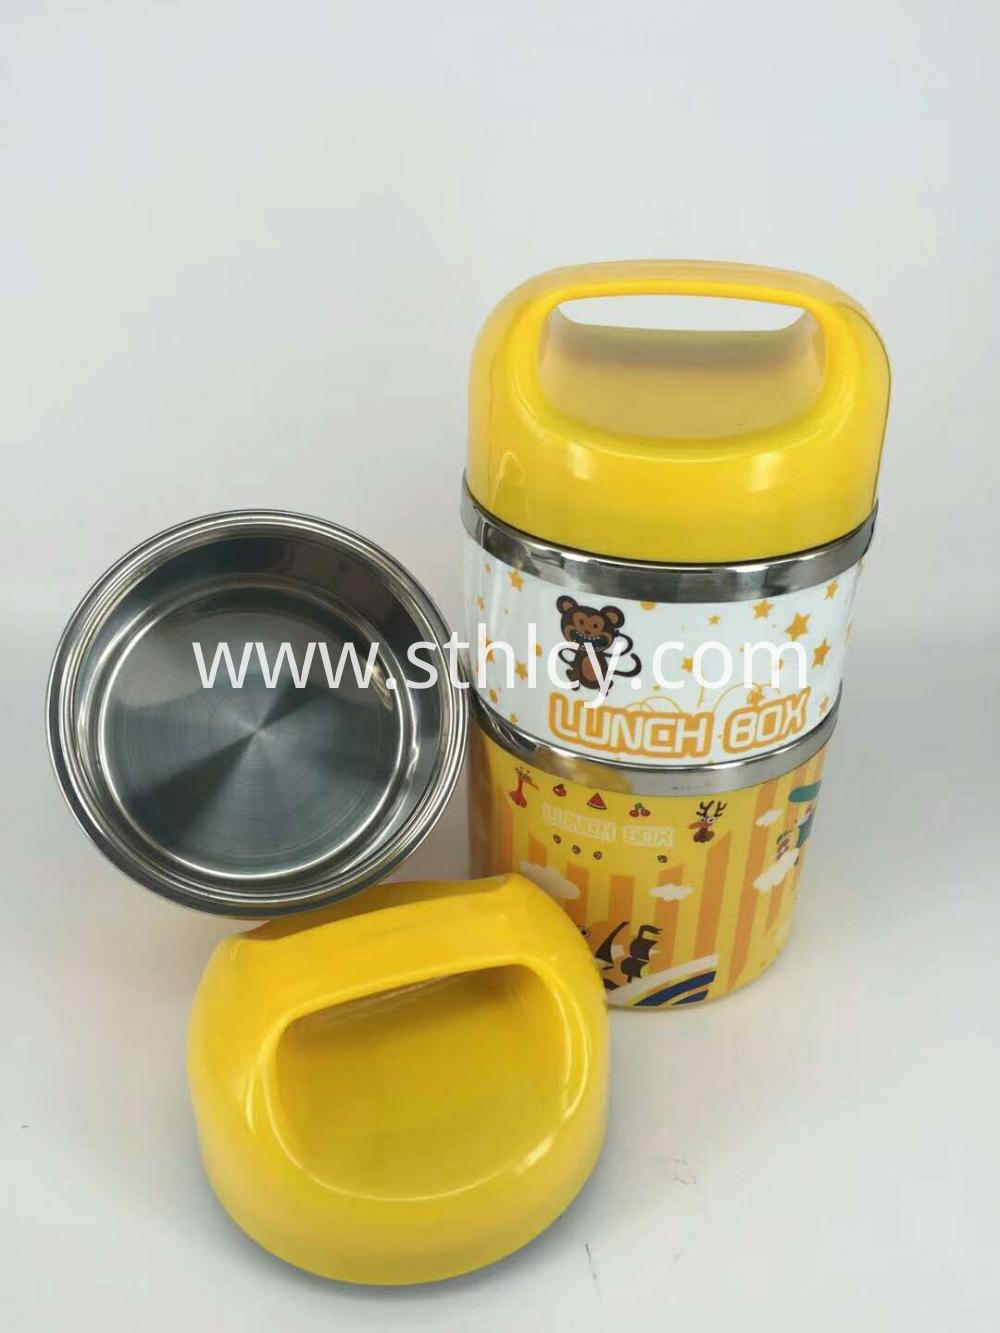 Stainless Steel Lunch Box For Office